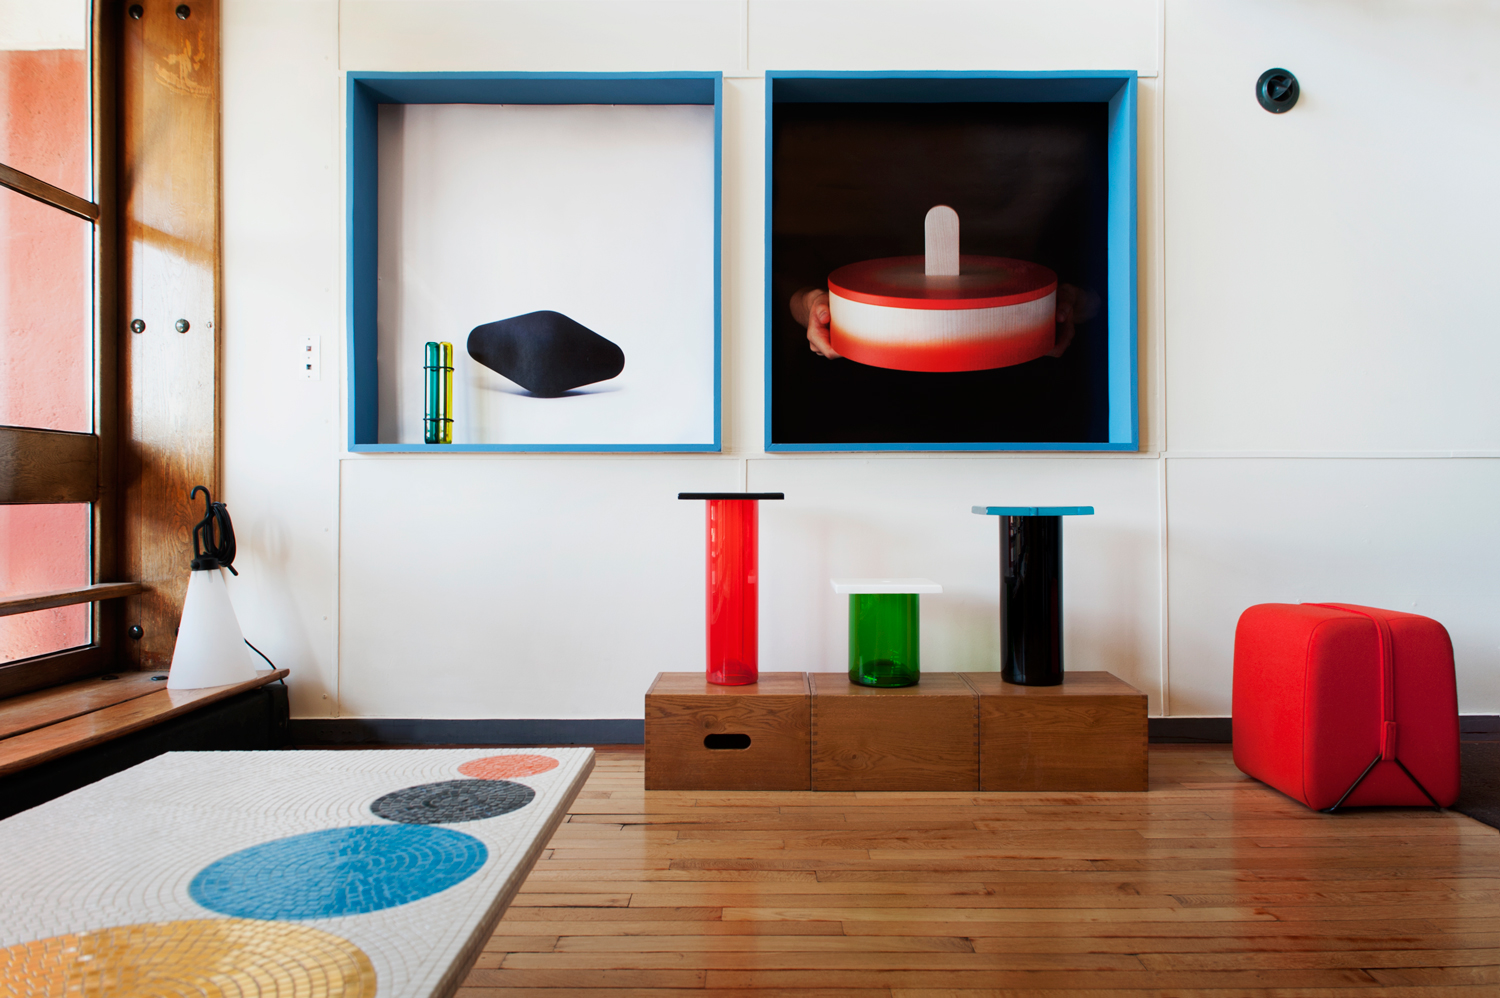 Pierre Charpin's Installation at Apartment N°50 by Le Corbusier | Yellowtrace